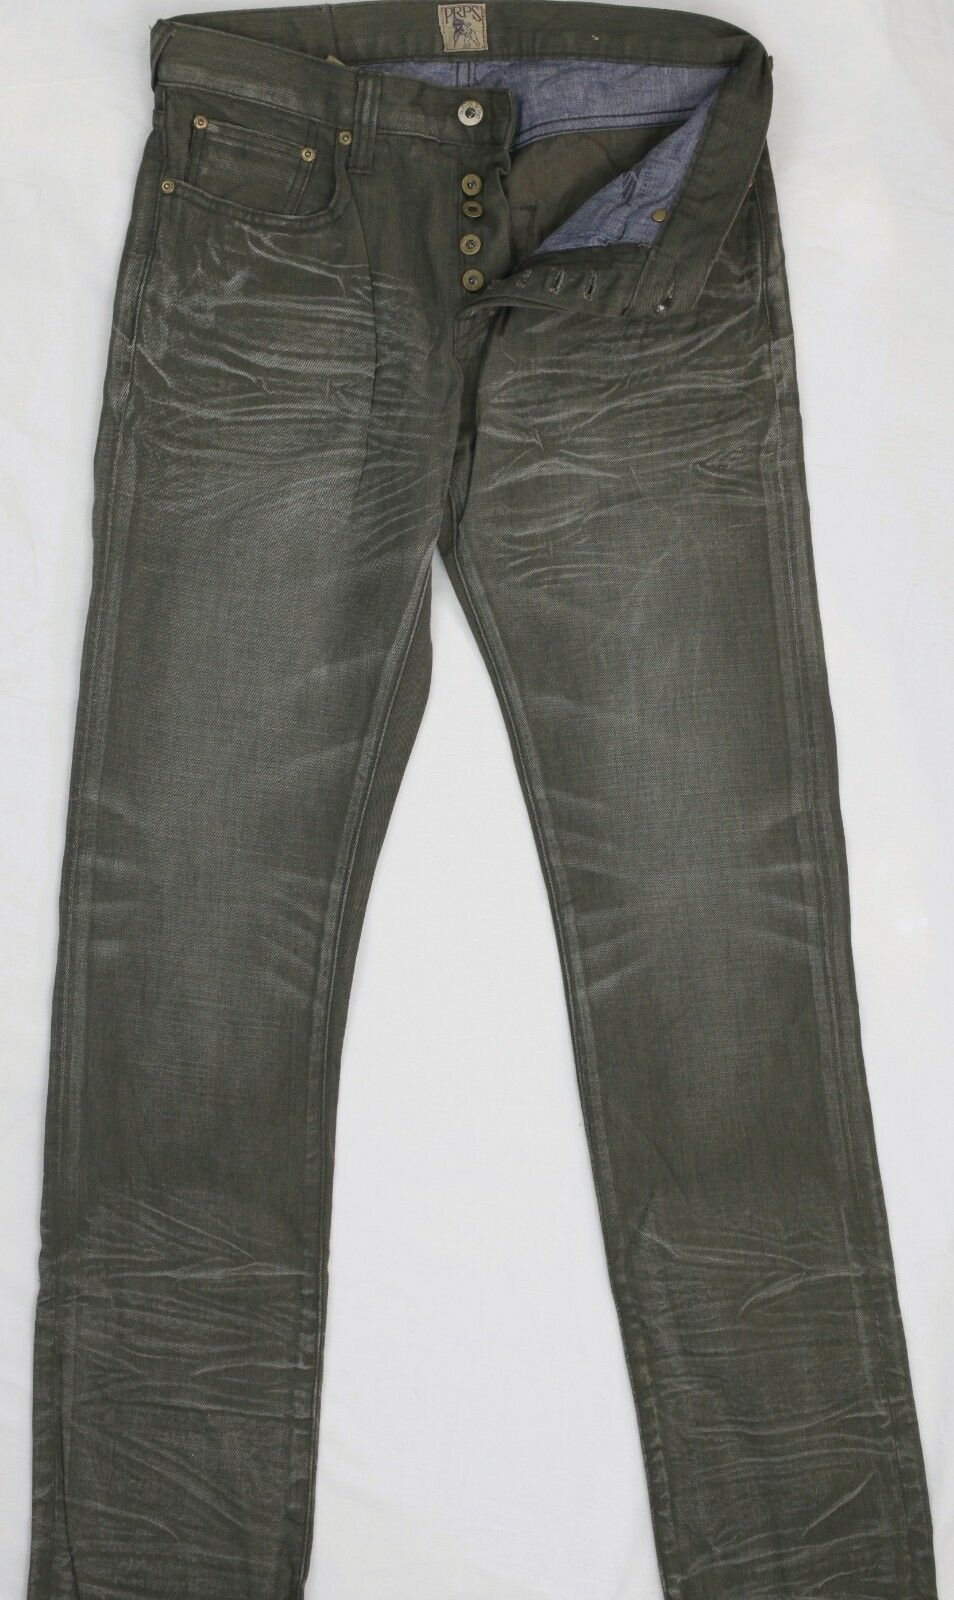 PRPS Green Denim Jeans Slim Fit Label 31 Measure 31 Preowned Condition